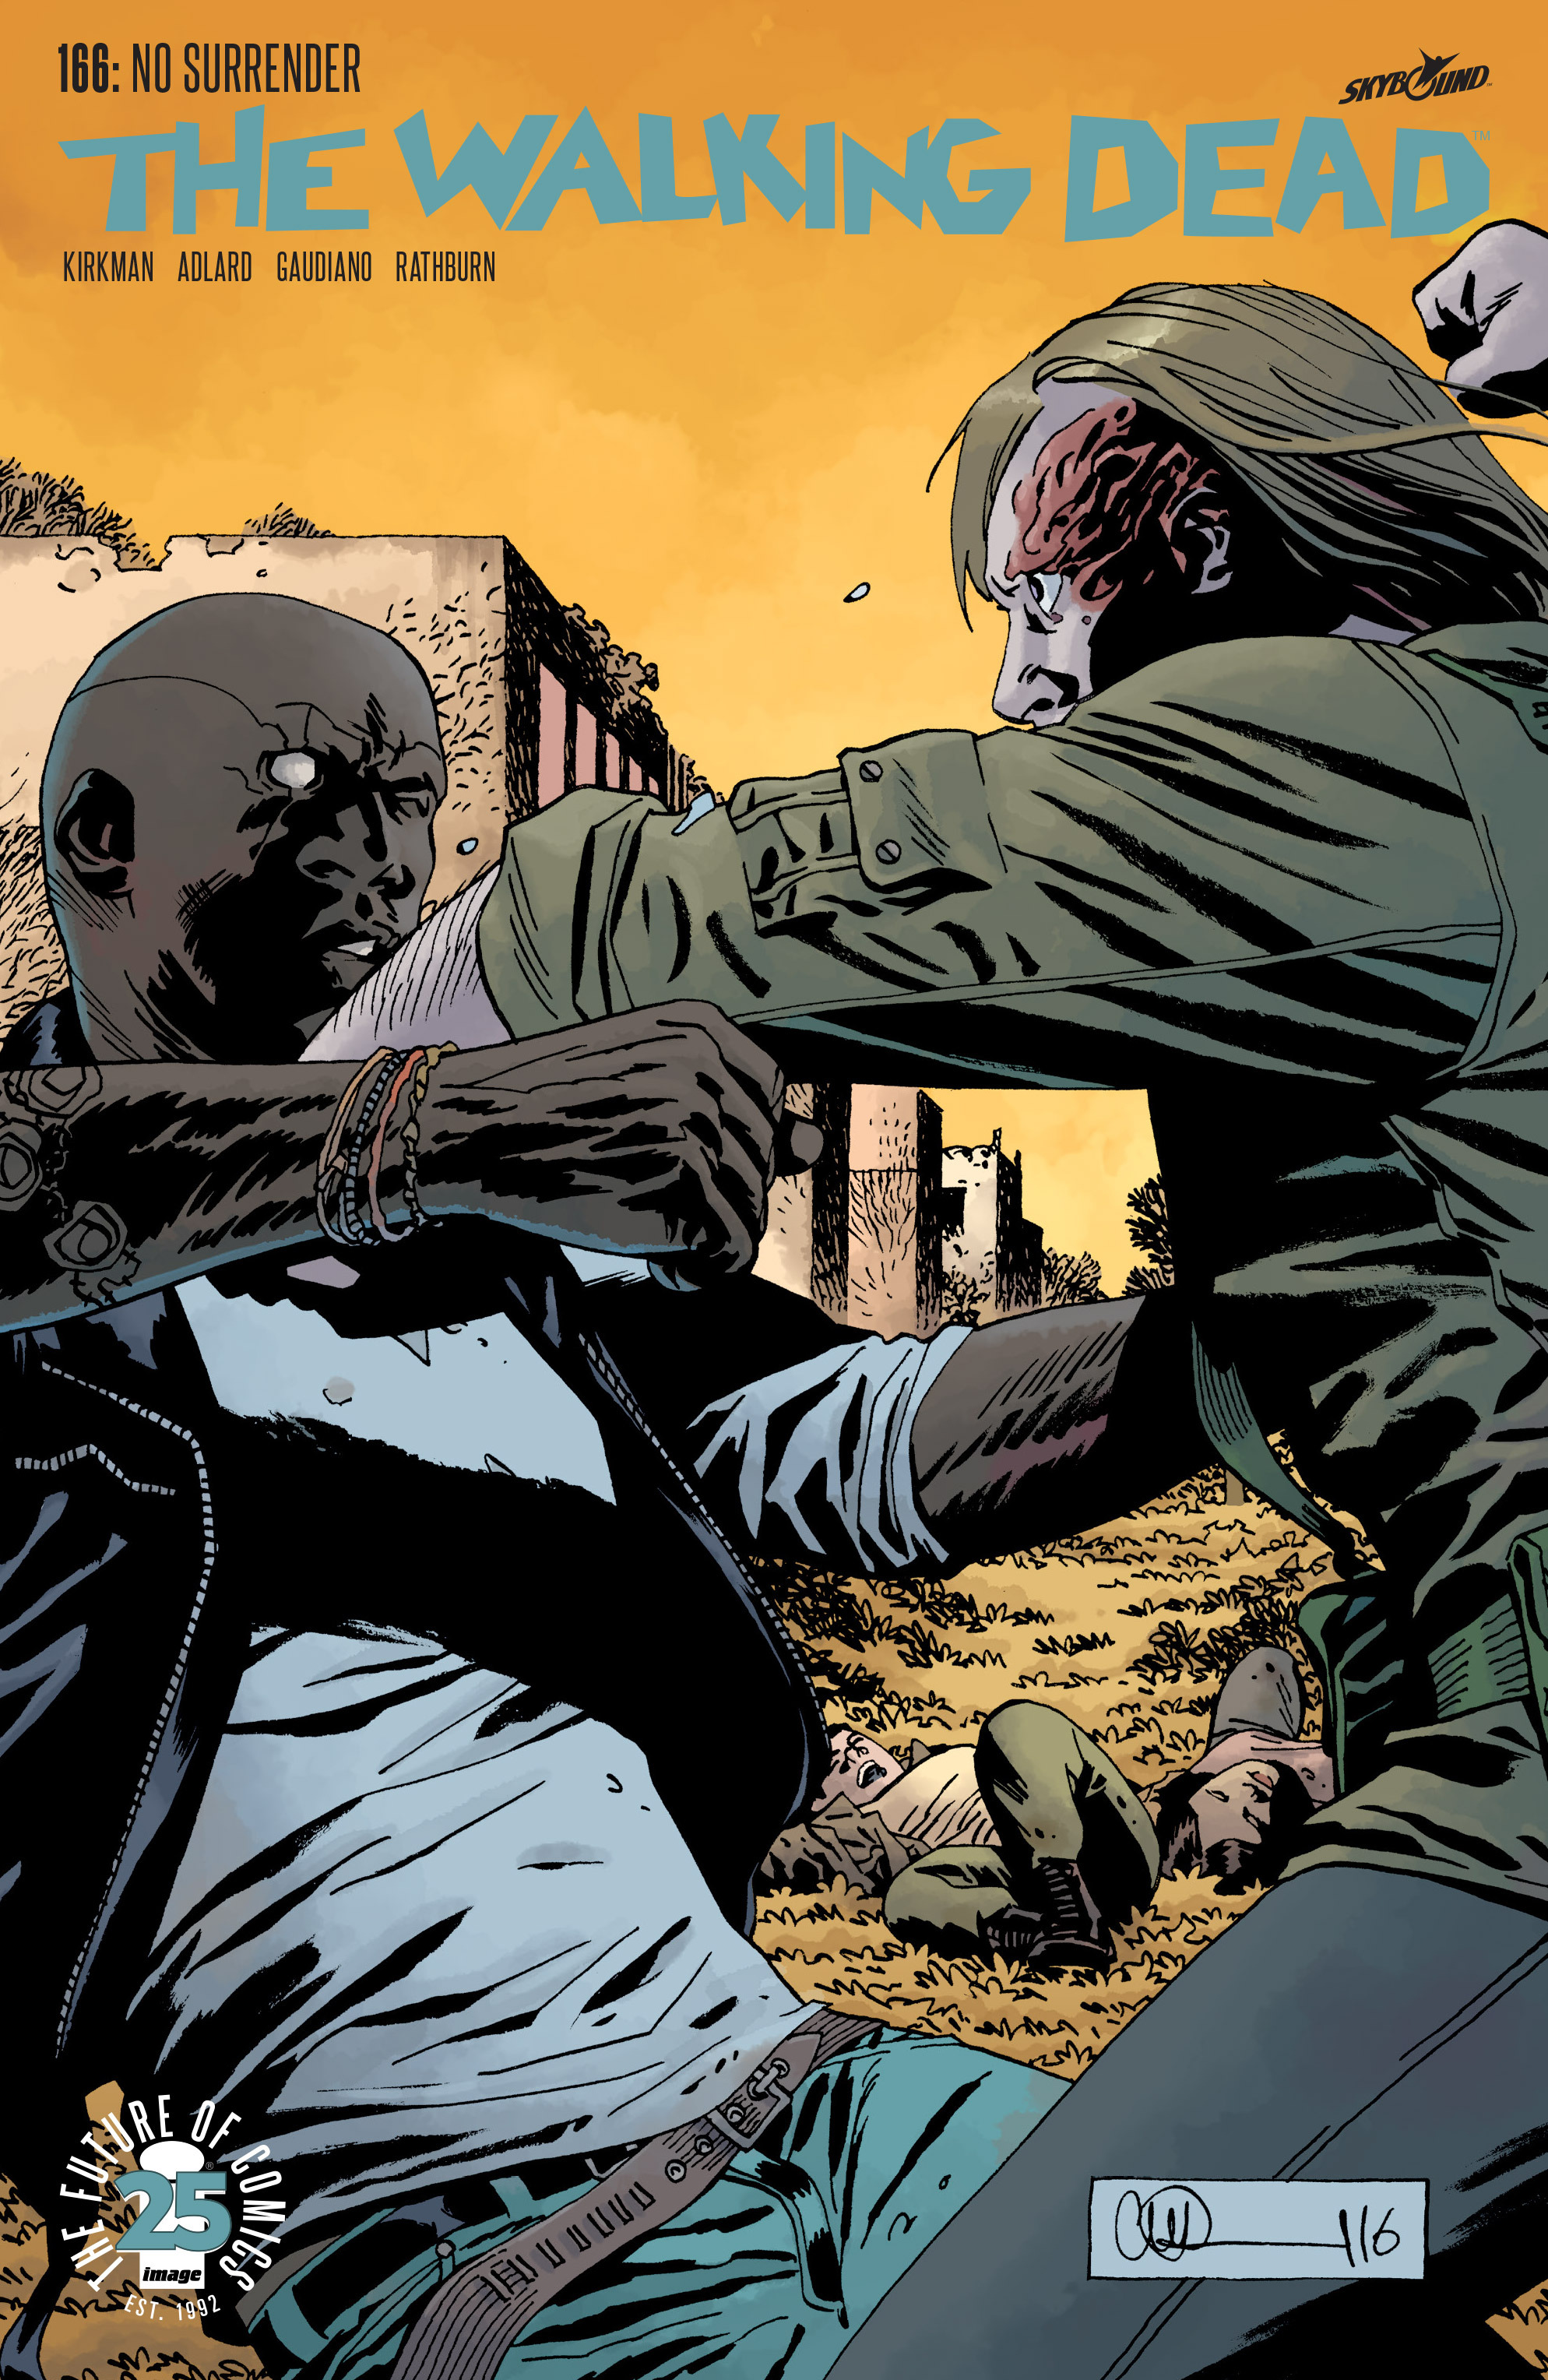 The Walking Dead 166 Page 1